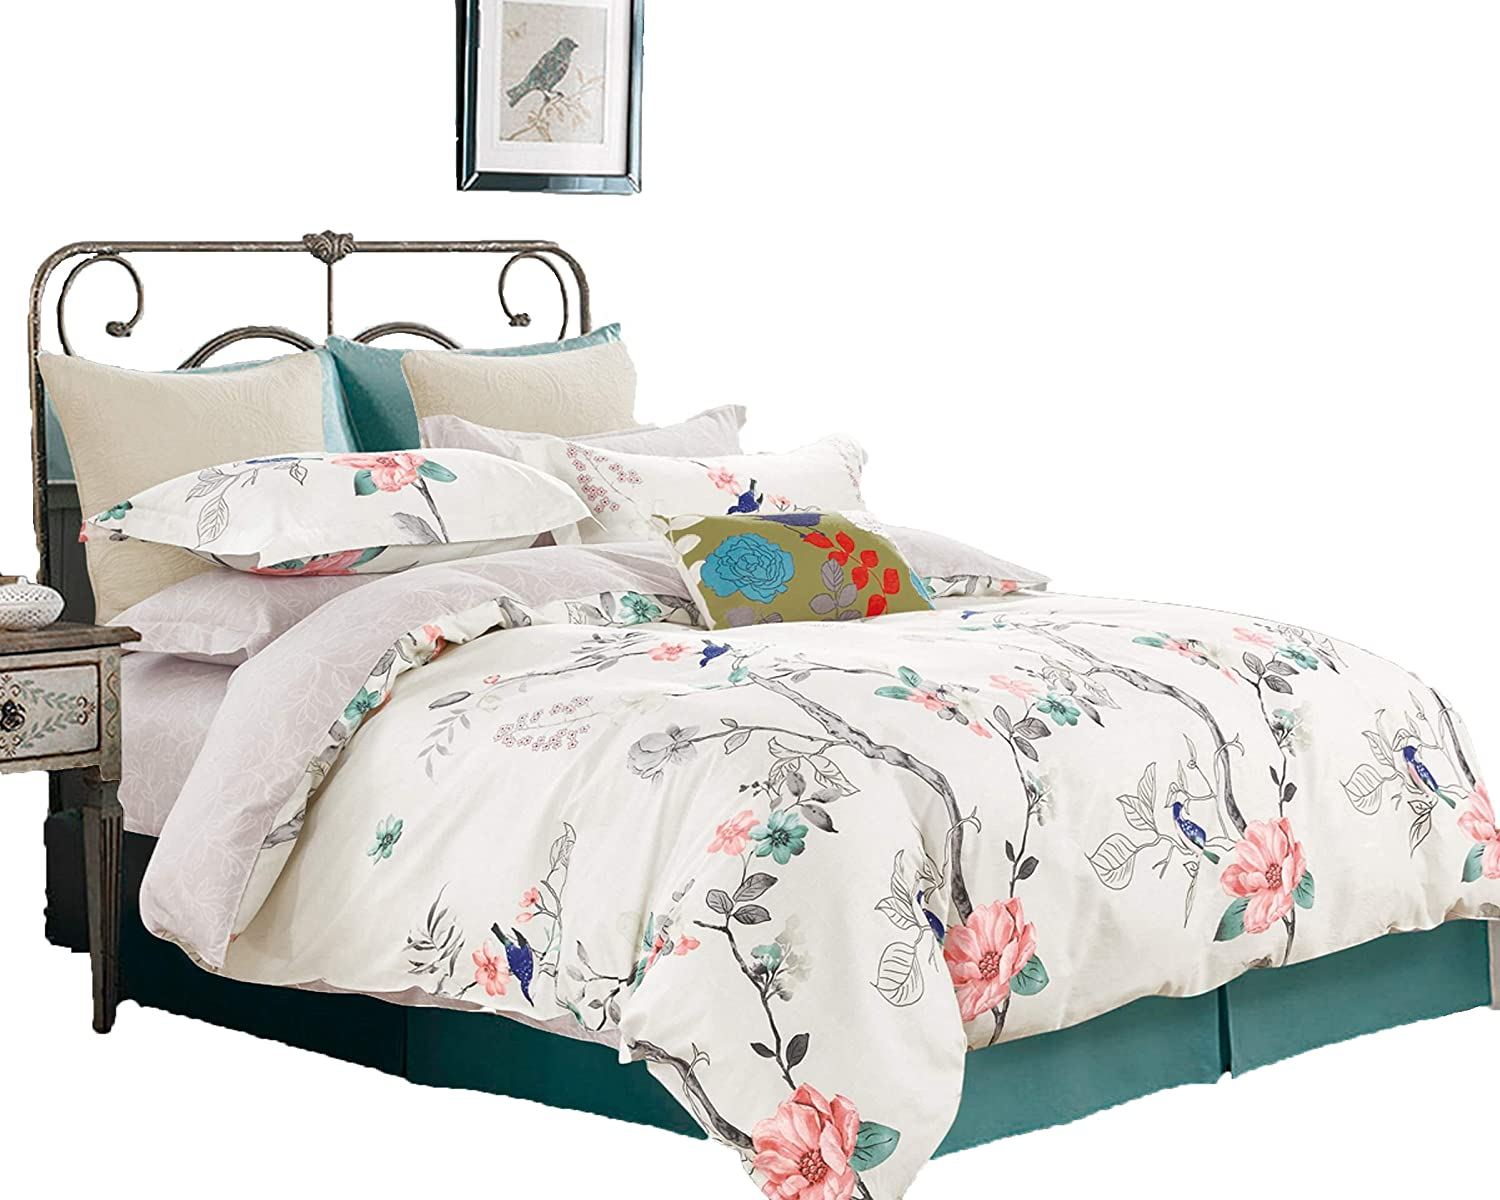 Swanson Beddings Oriental Style Reversible Floral Print 3-Piece 100% Cotton Bedding Set: Duvet Cover and Two Pillow Shams (King)